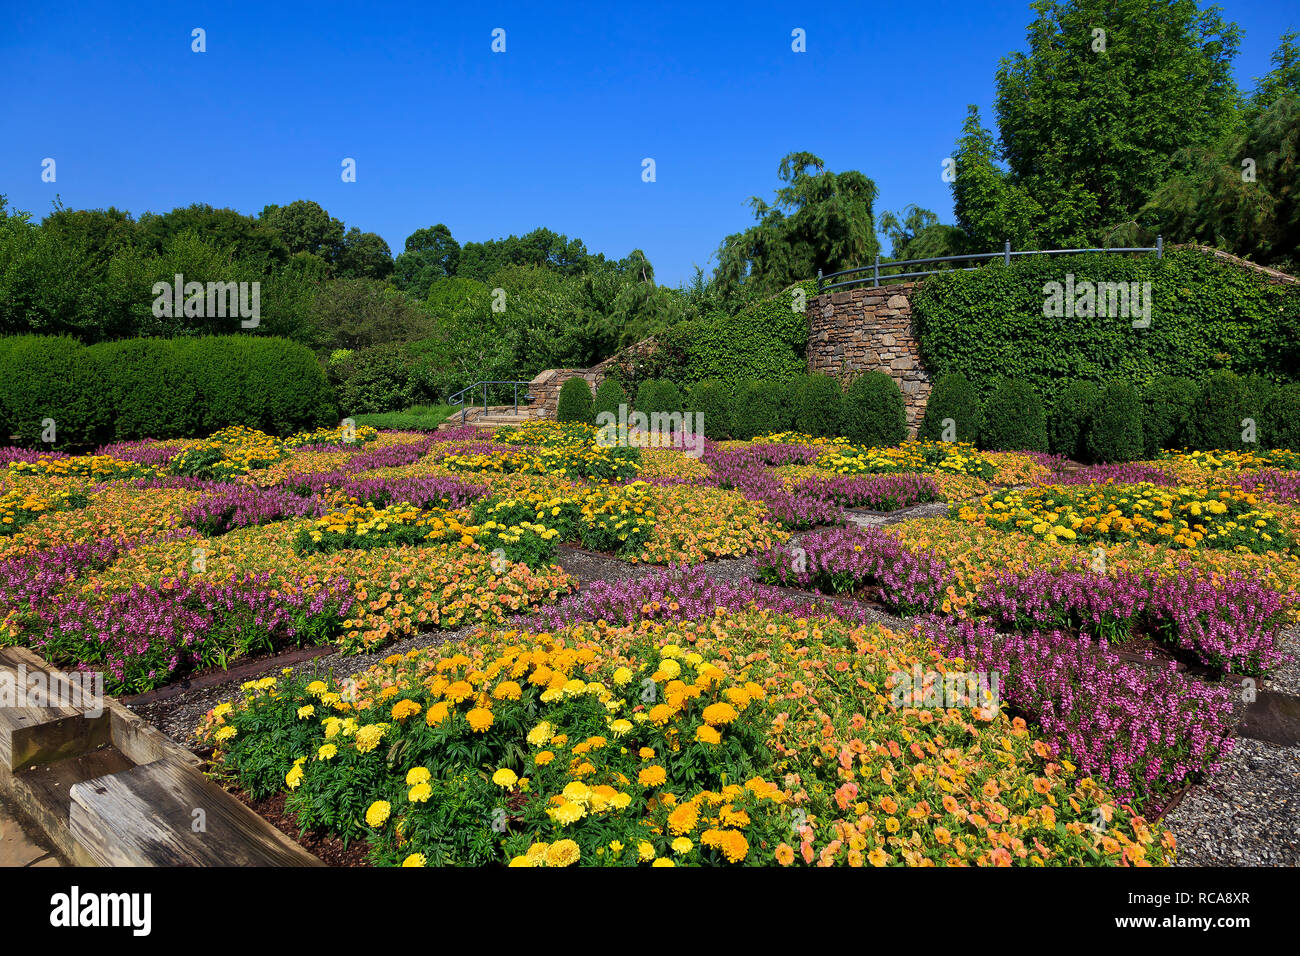 Patterned Quilt Garden in Asheville North Carolina - Stock Image